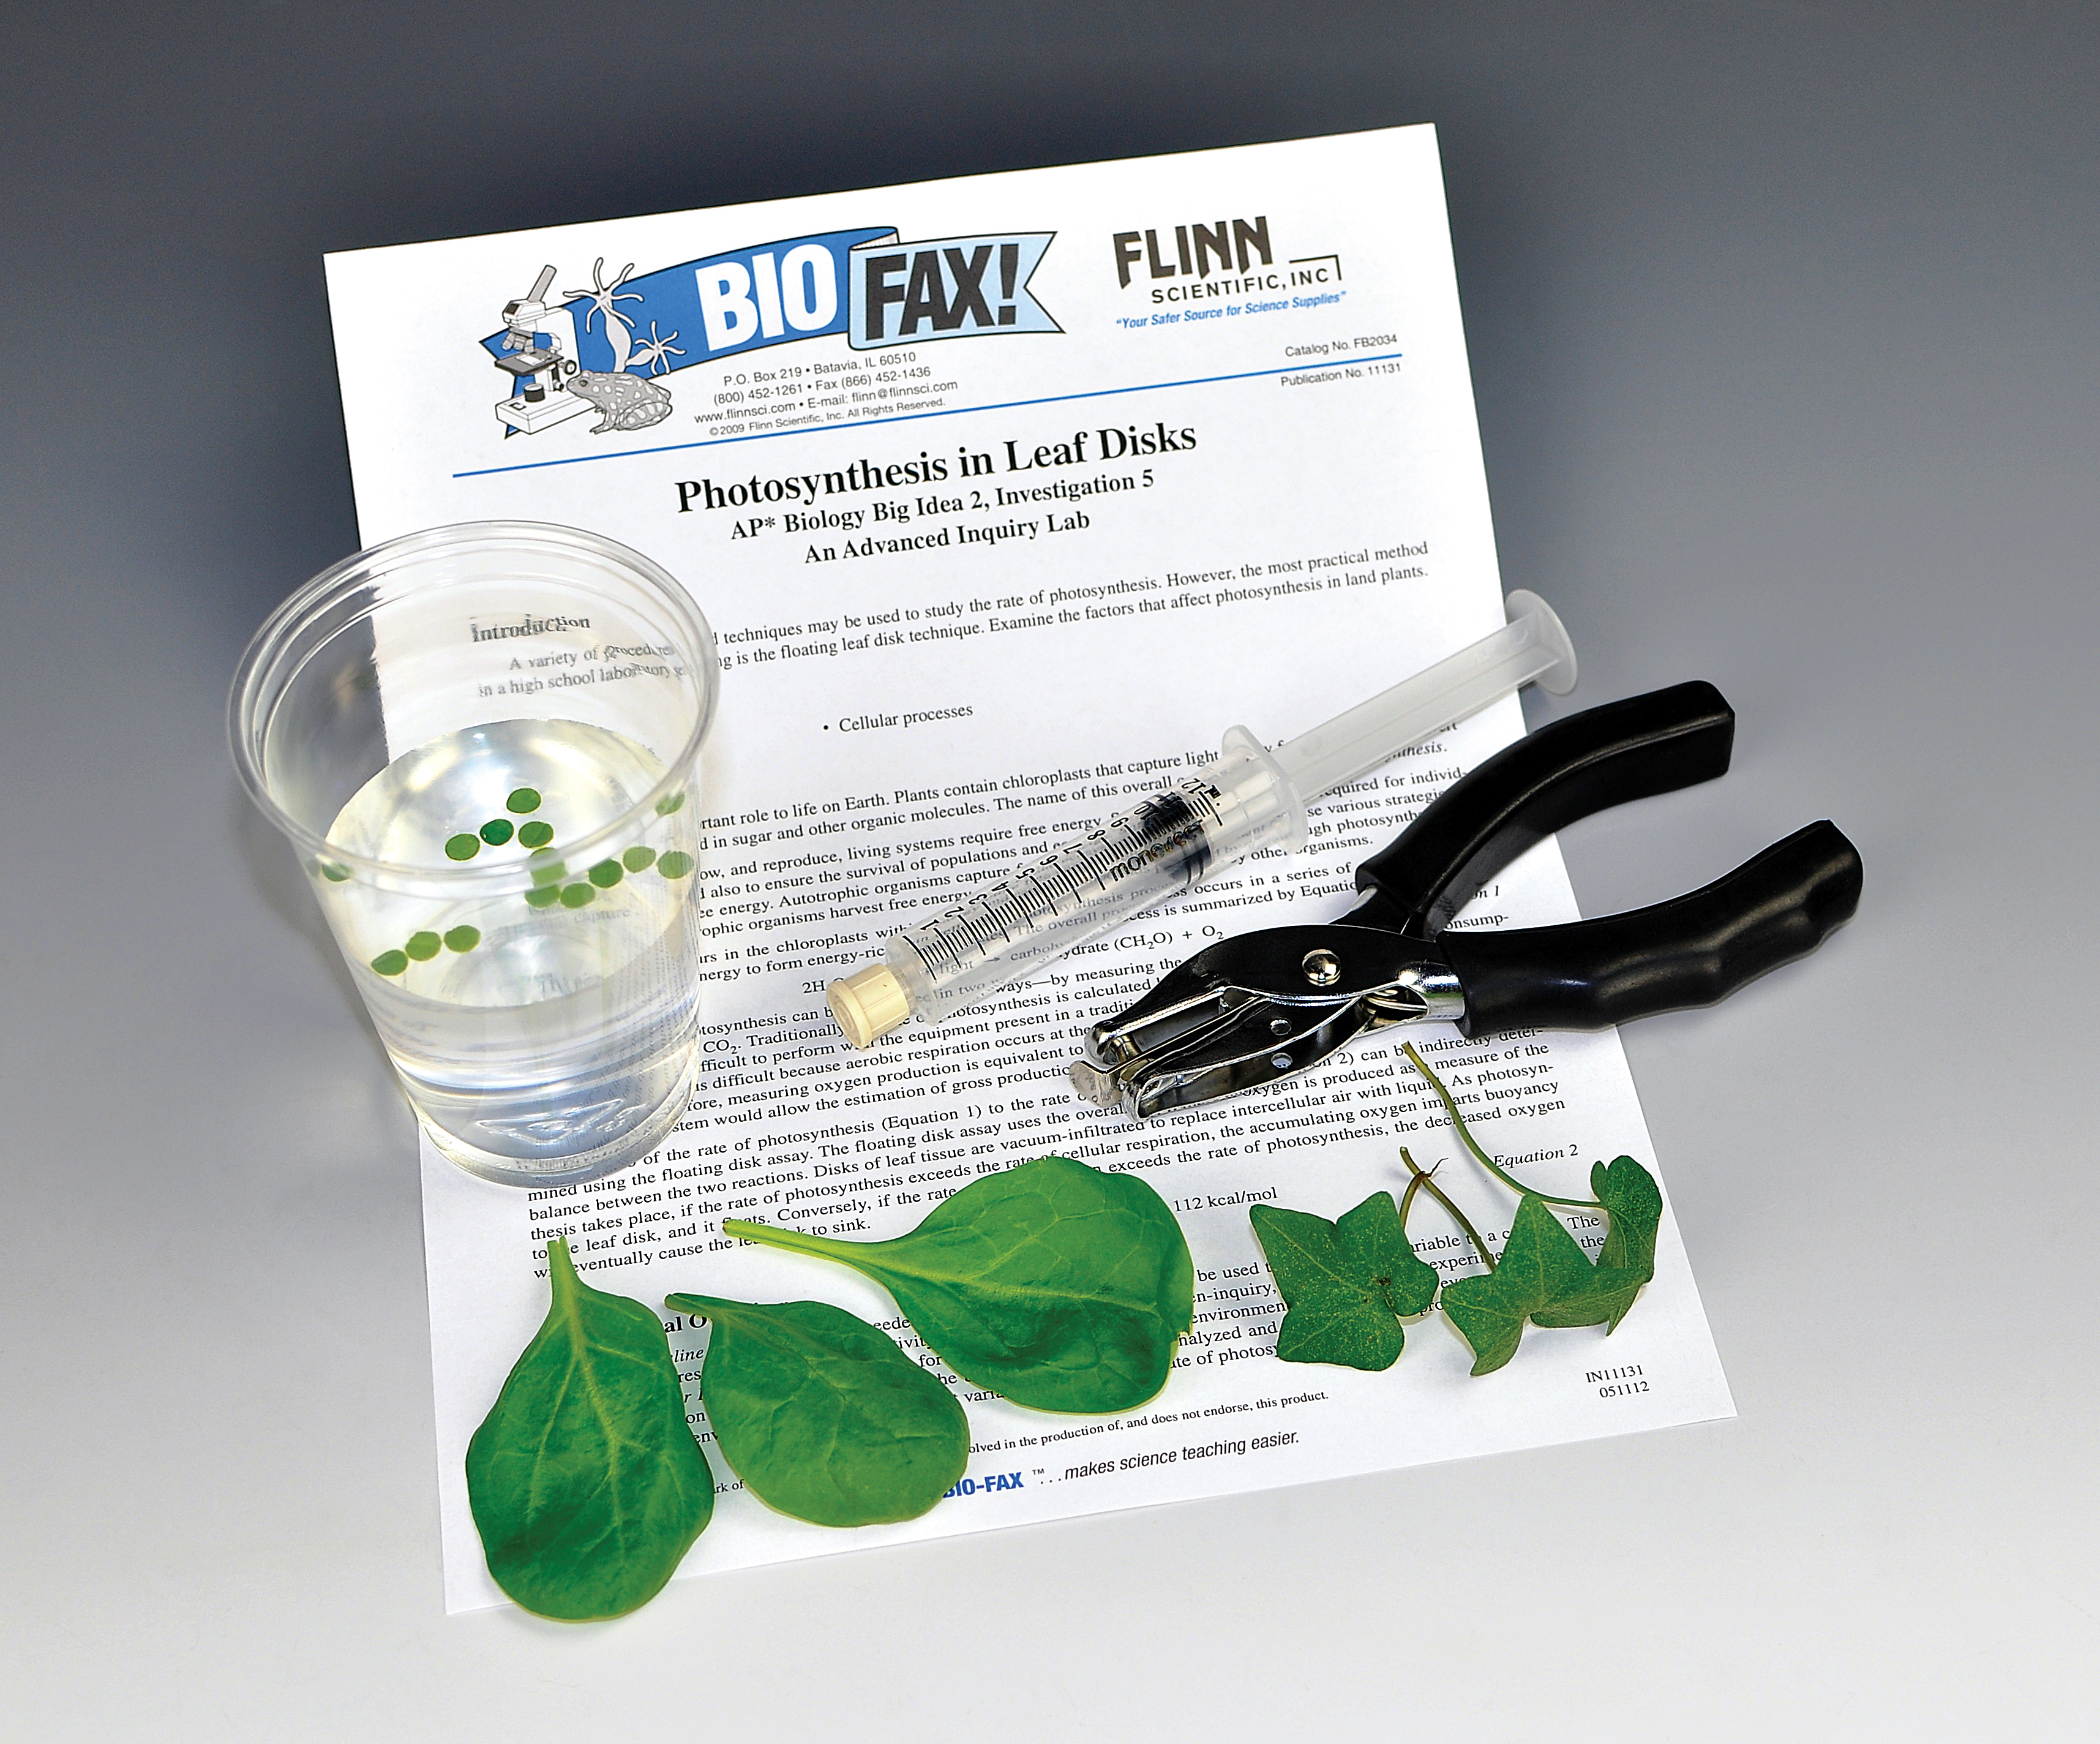 biology leaf lab Lab report 1 biology photosynthesis - download as word doc (doc / docx), pdf file (pdf), text file (txt) or read online biology lab report on photosynthesis.